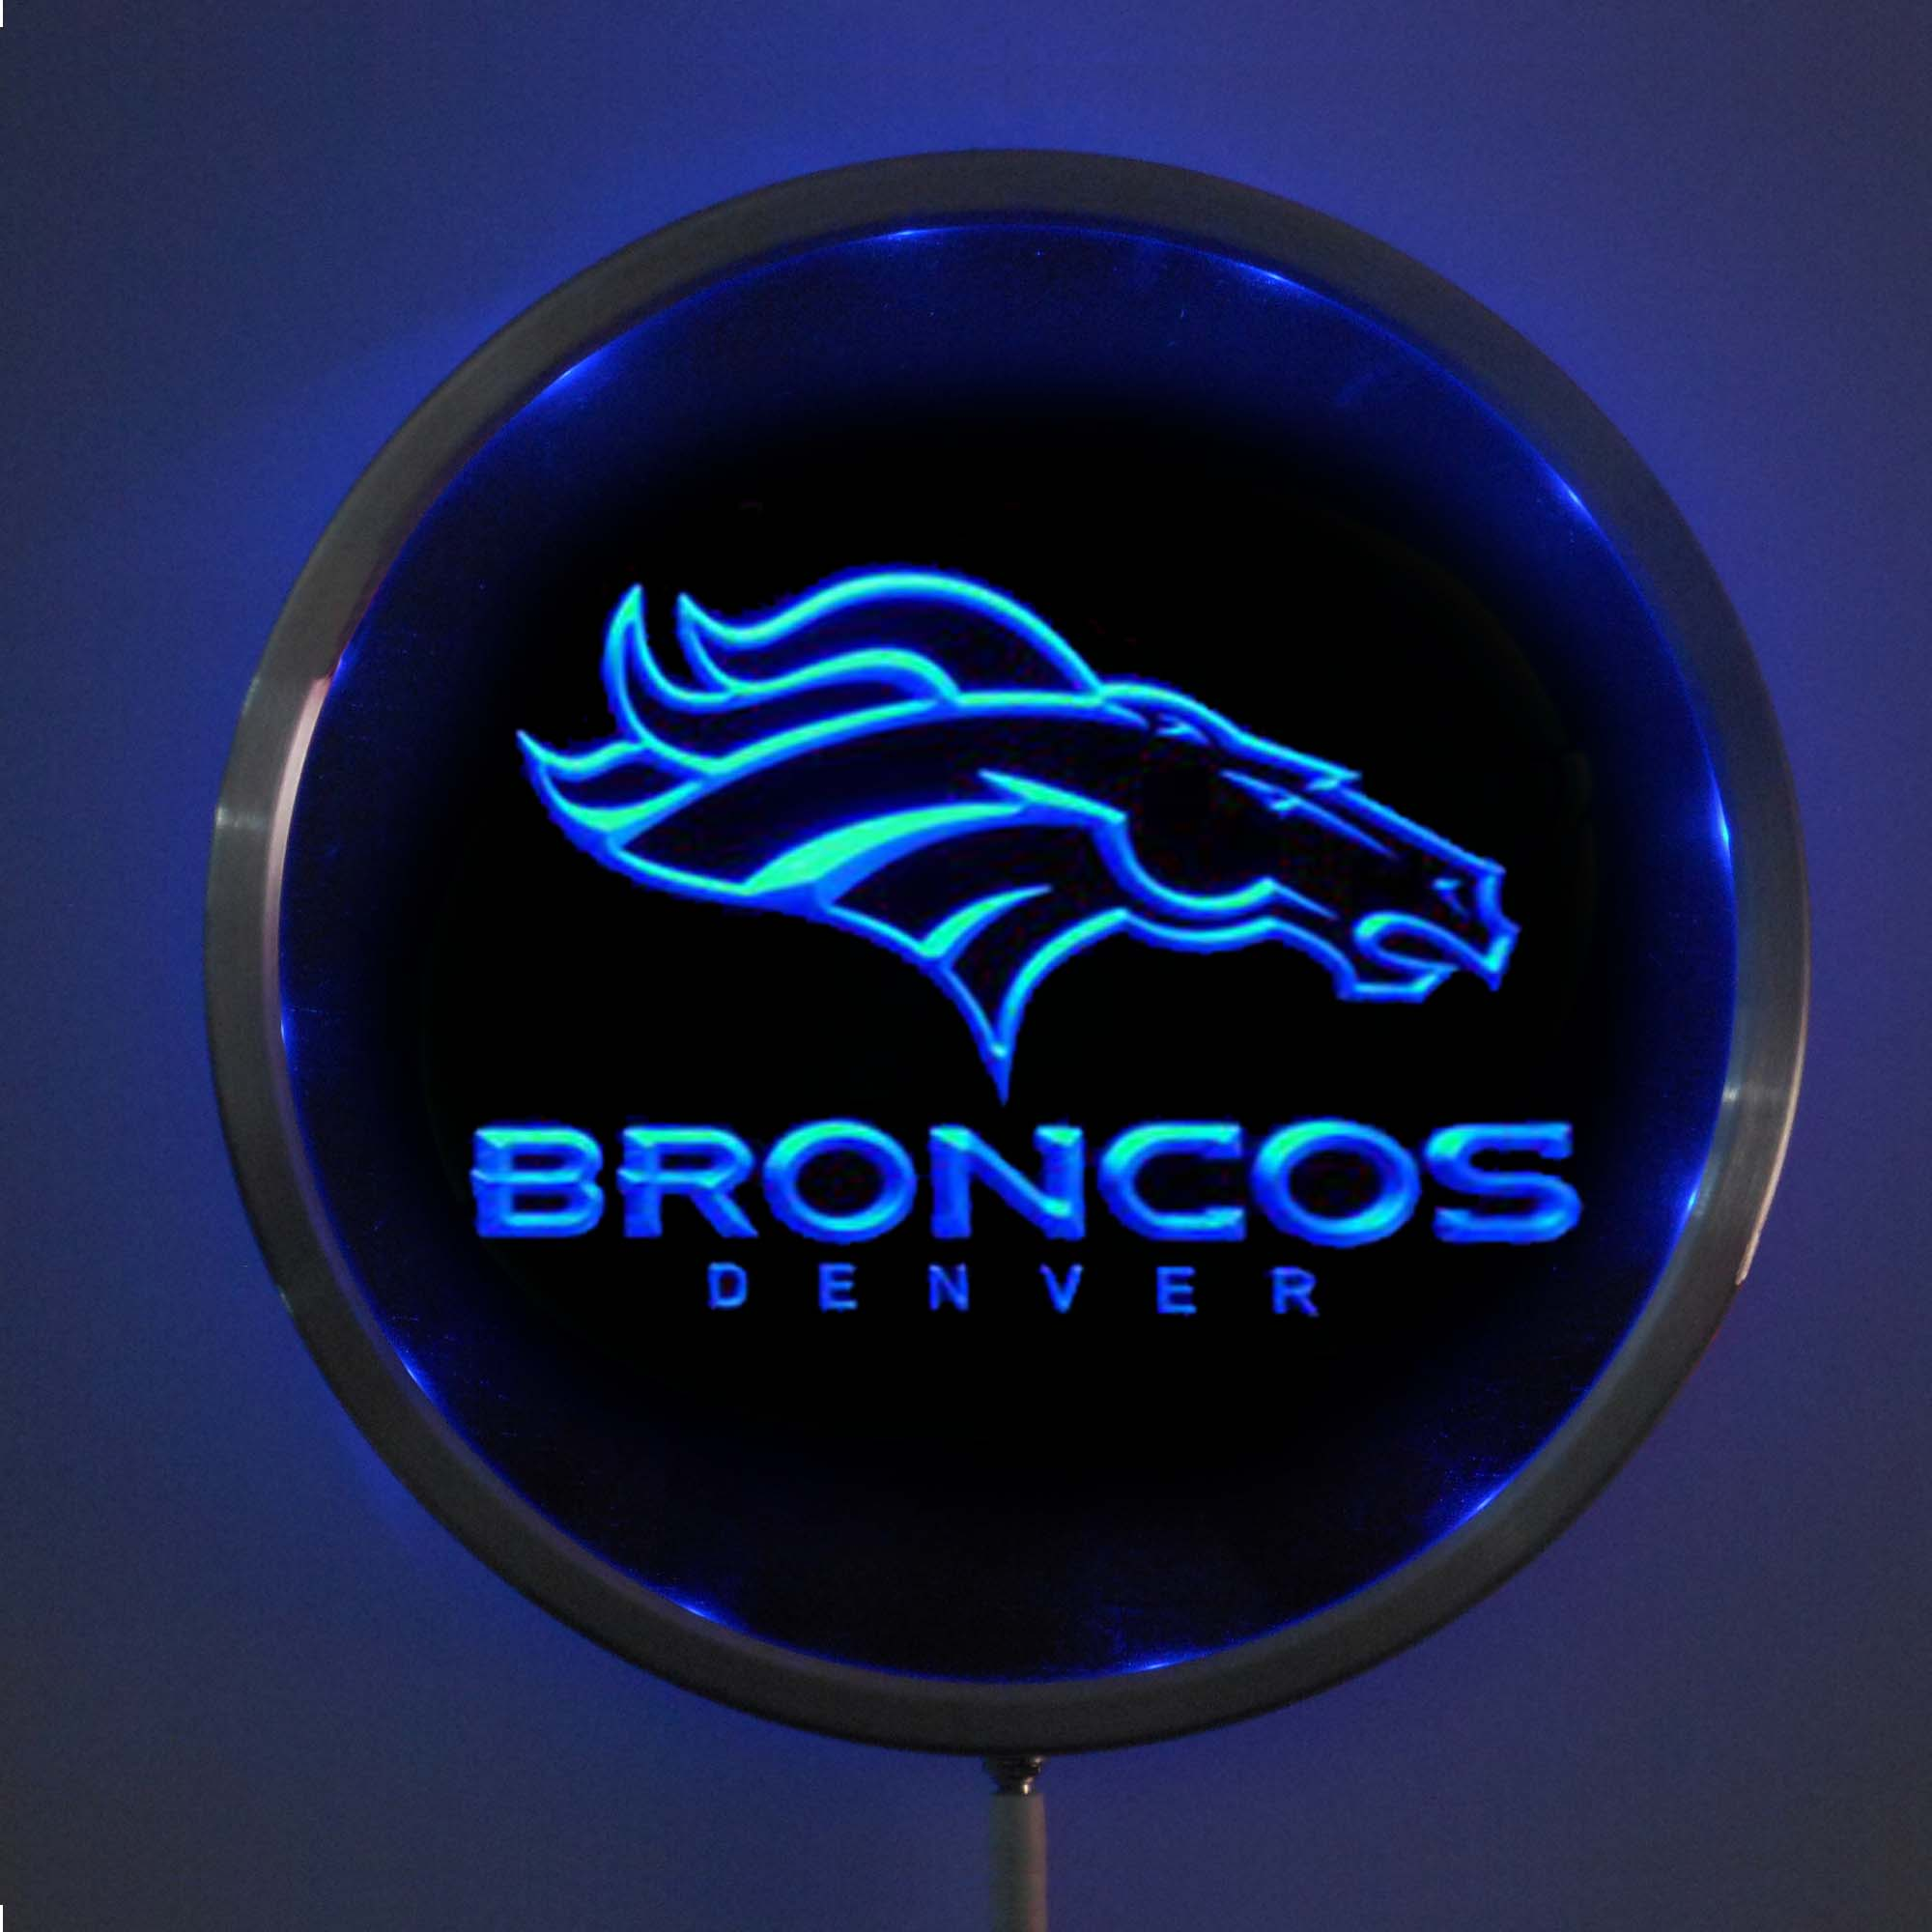 rs-b0067 Denver Broncos LED Neon Round Signs 25cm/ 10 Inch - Bar Sign with RGB Multi-Color Remote Wireless Control Function